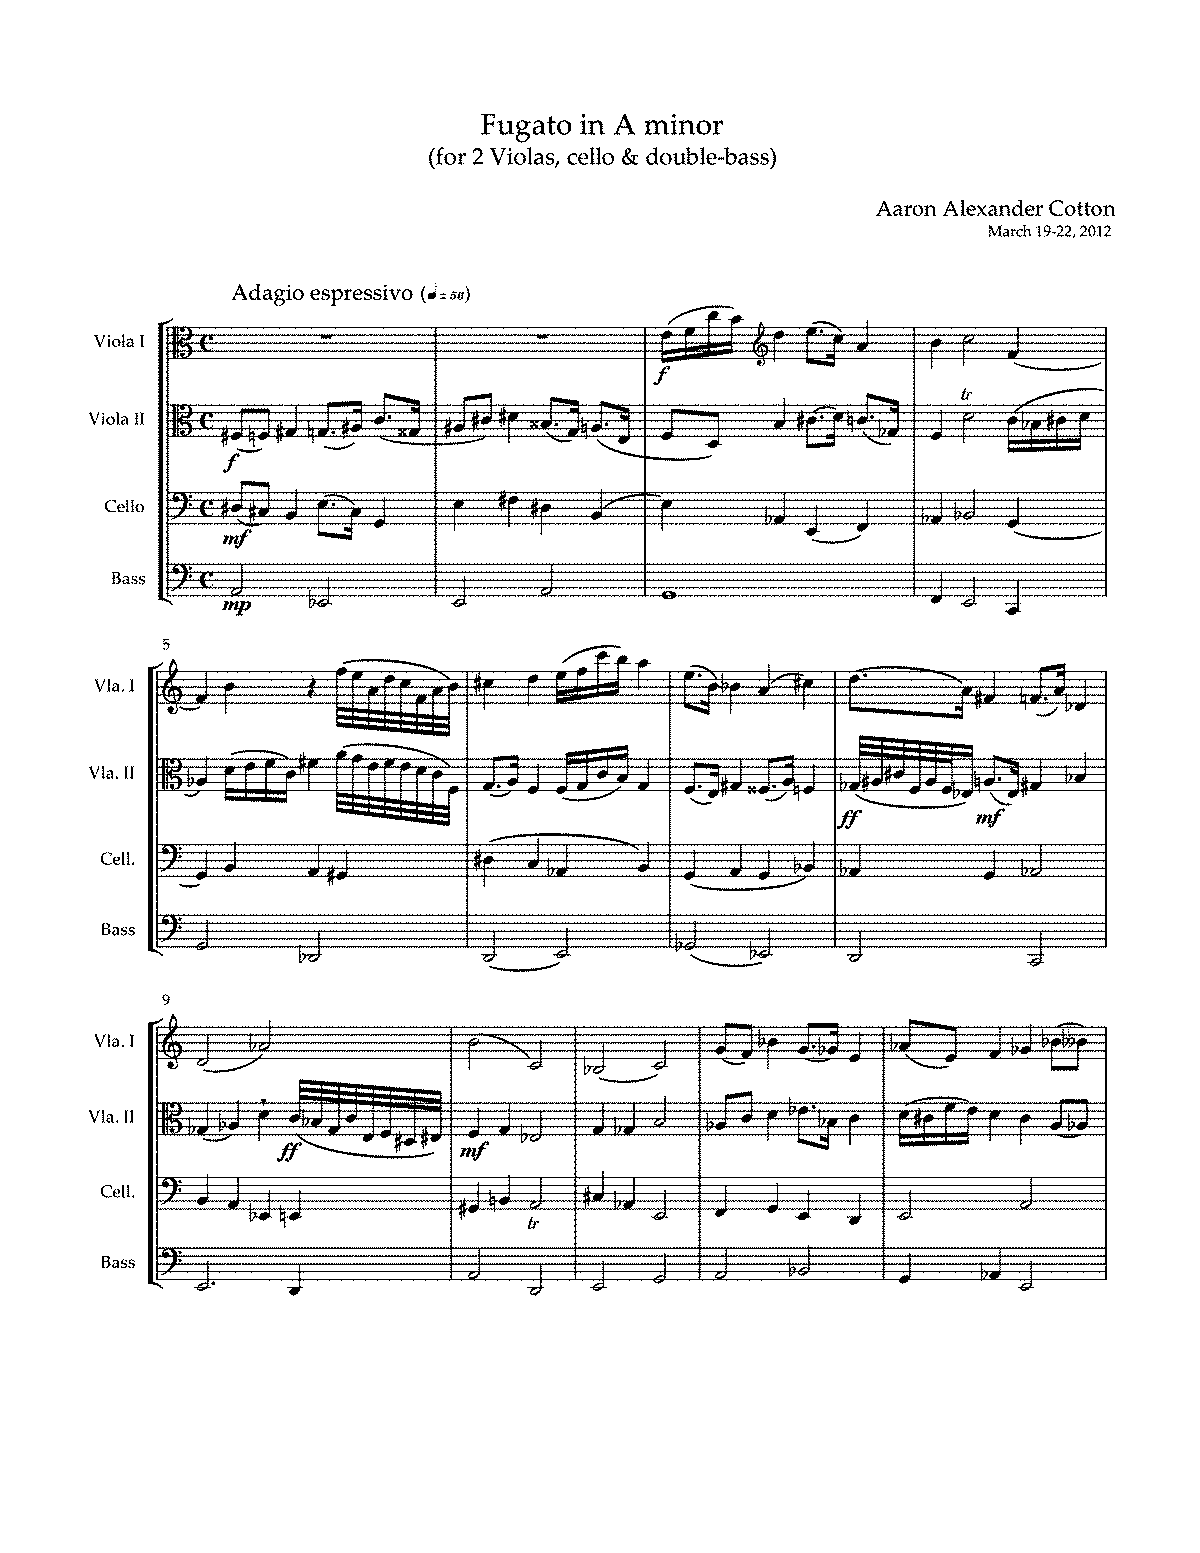 PMLP329881-Fugato in A minor (for 2 Violas, cello & double-bass) by Aaron Alexander Cotton.pdf